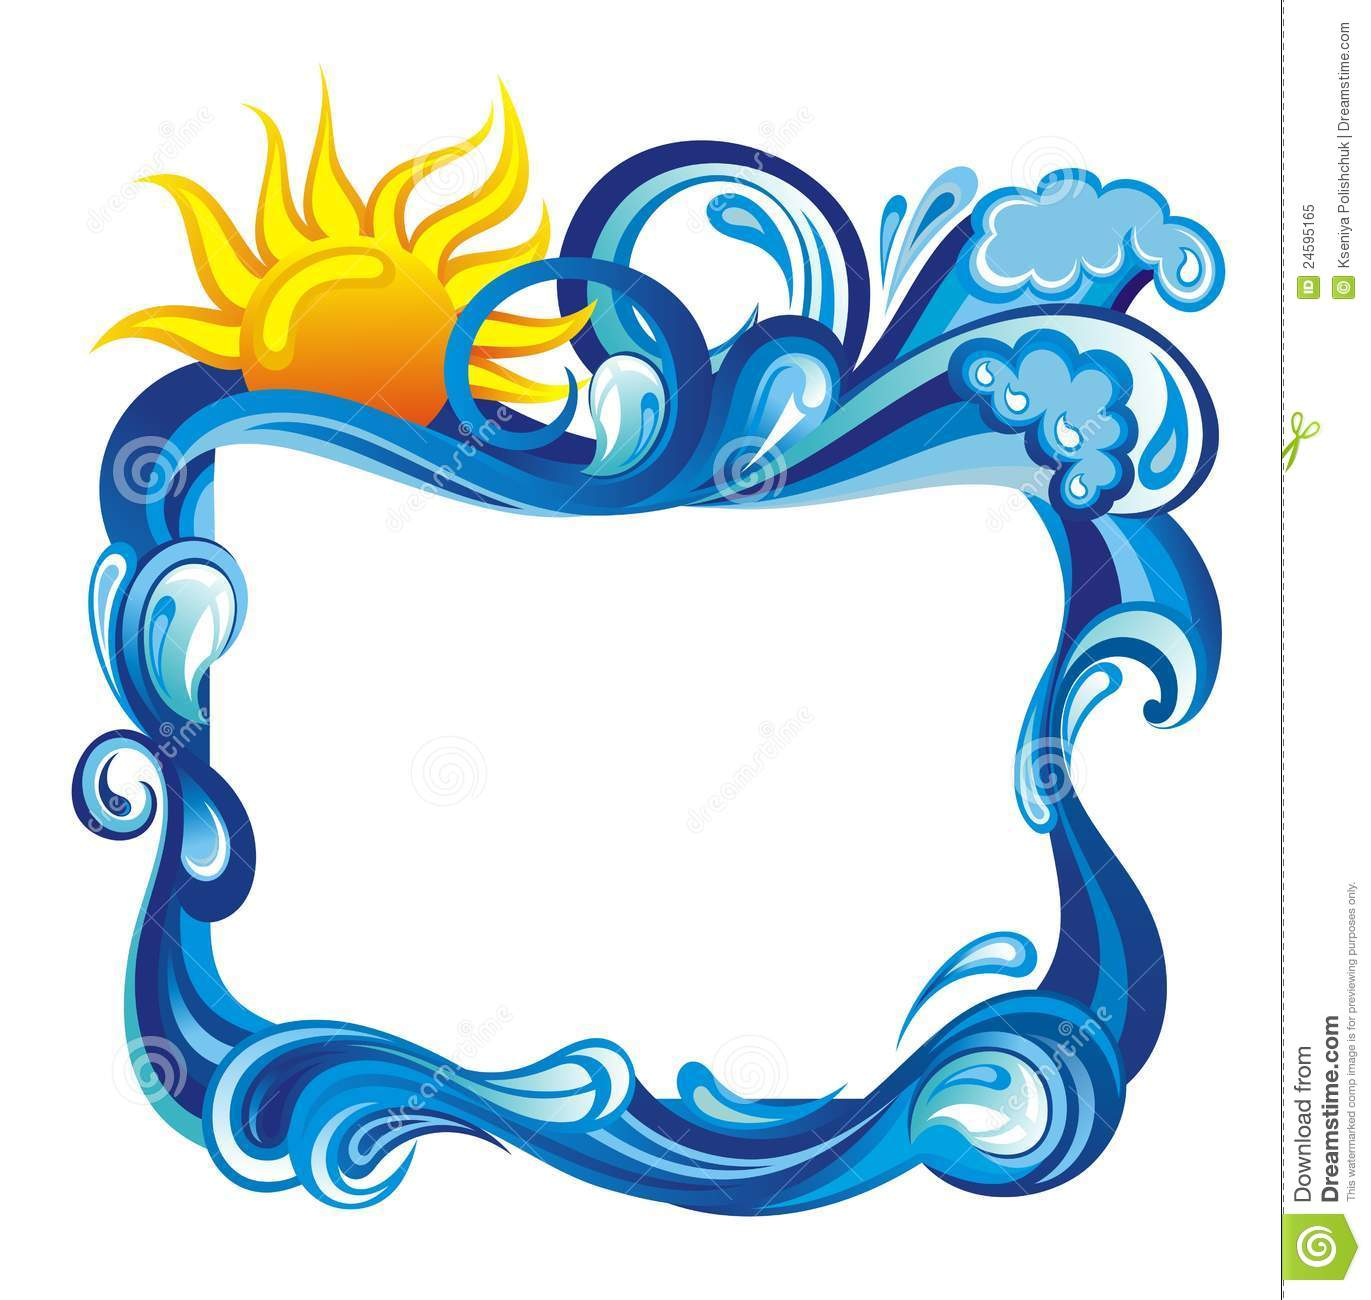 Water Frames Clipart.